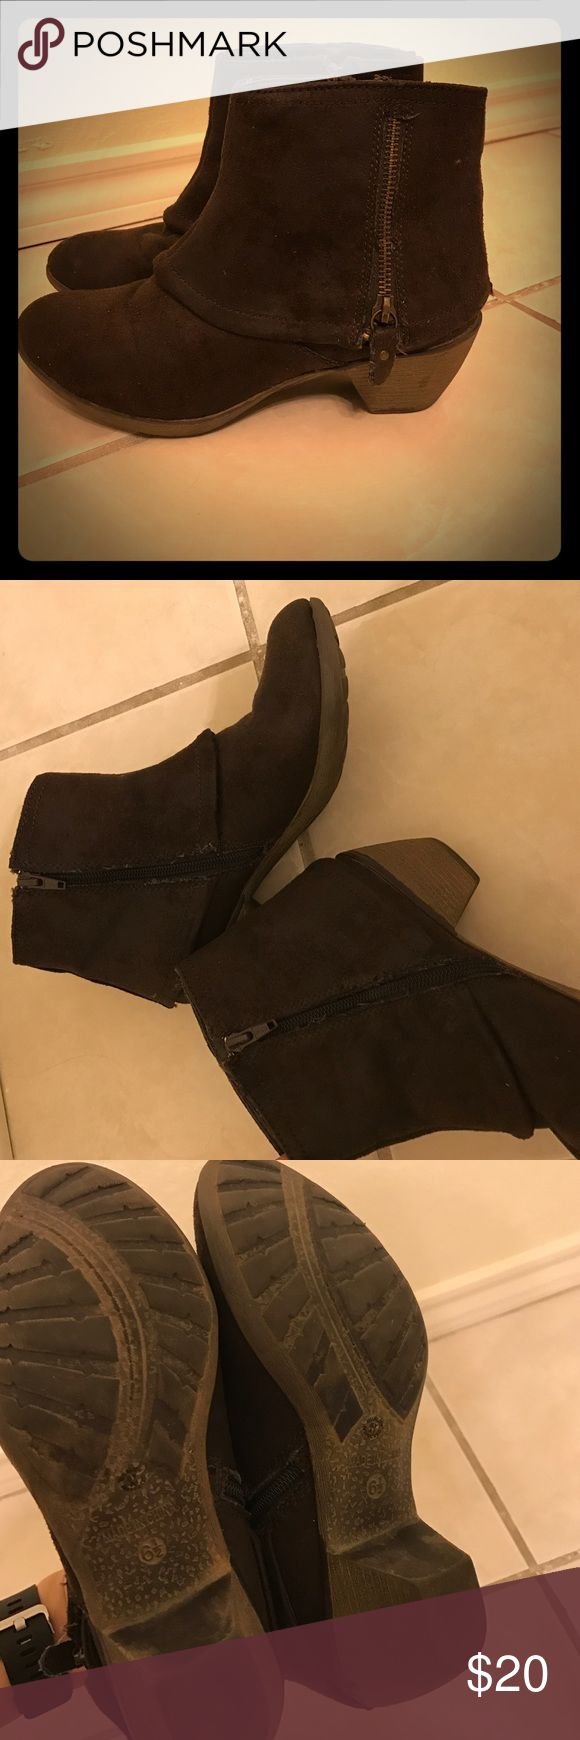 Brown Suede Booties Brown Suede Booties. Size 6.5. Signs of wear as shown in photos. Worthington Shoes Ankle Boots & Booties